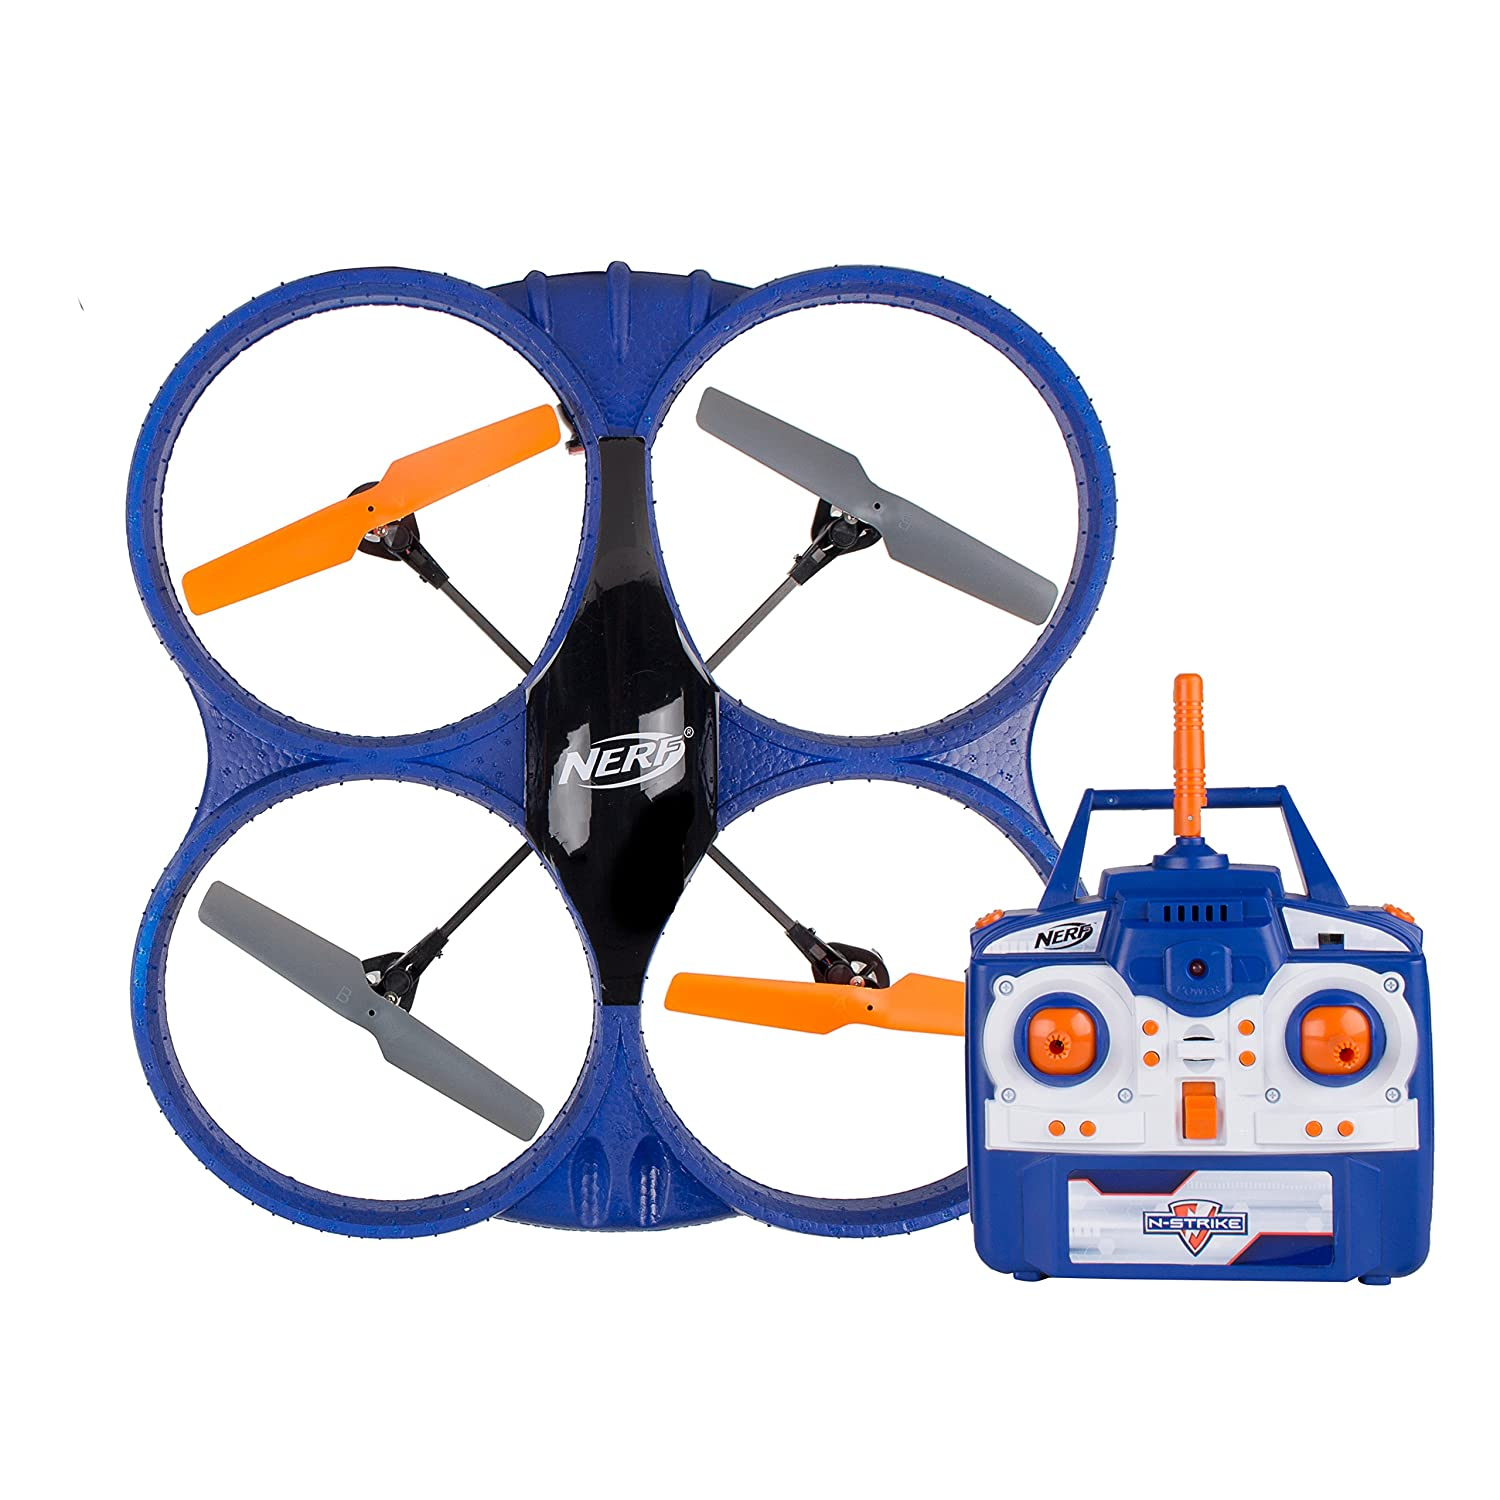 Amazon Nerf Air Defender X Drone Cam Copter with Remote Control Toys & Games